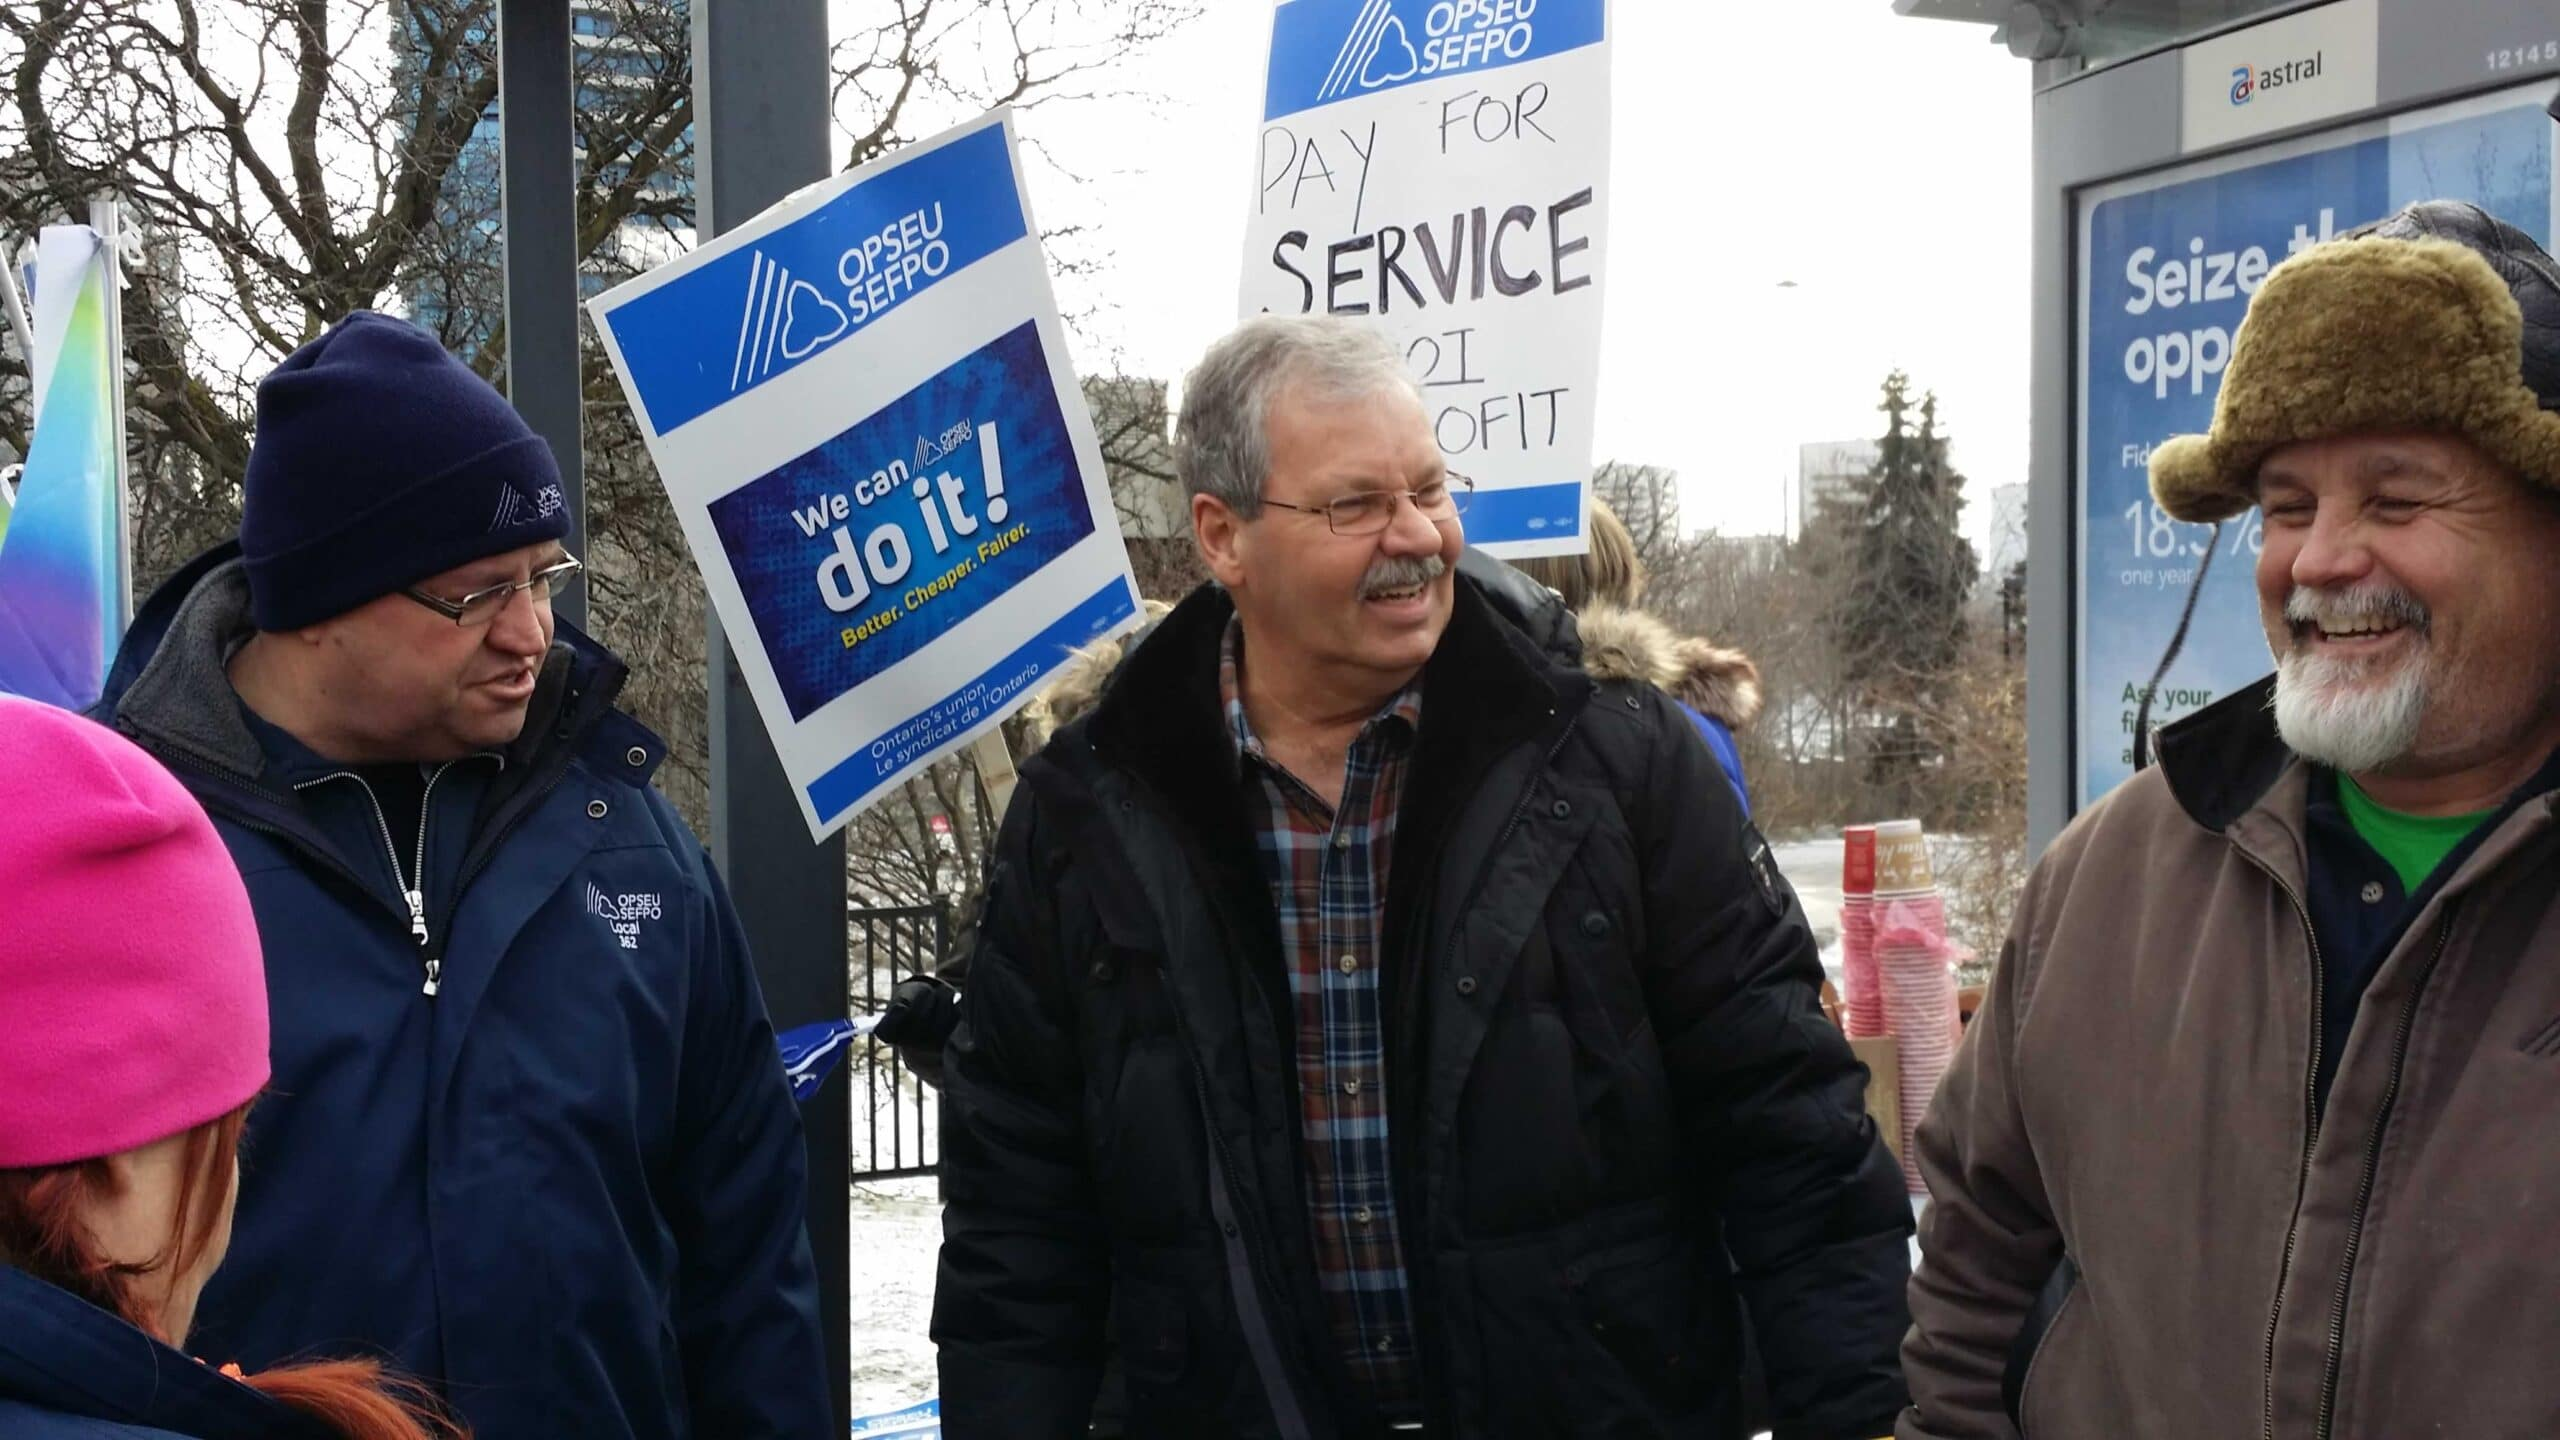 Smokey Thomas attends rally. Signs that say 'We can do it! Better. Cheaper. Fairer'